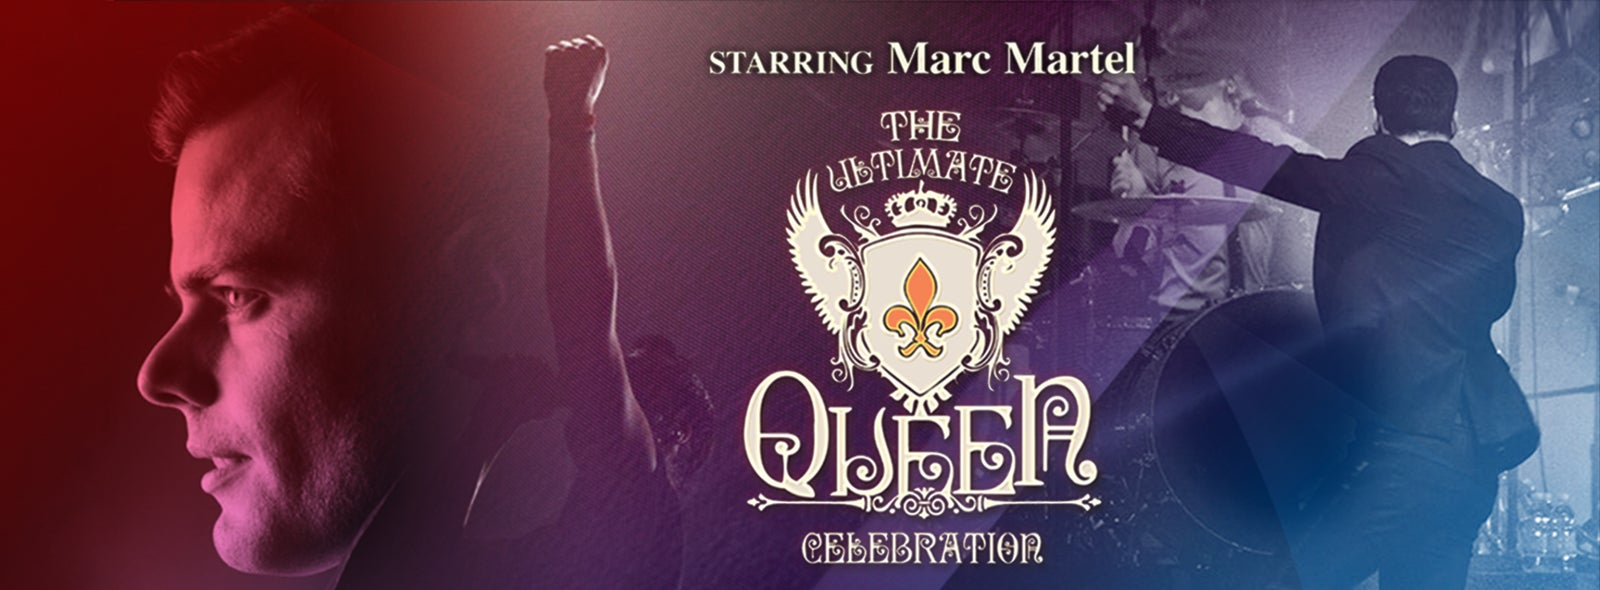 The Ultimate Queen Celebration_1600x590.jpg